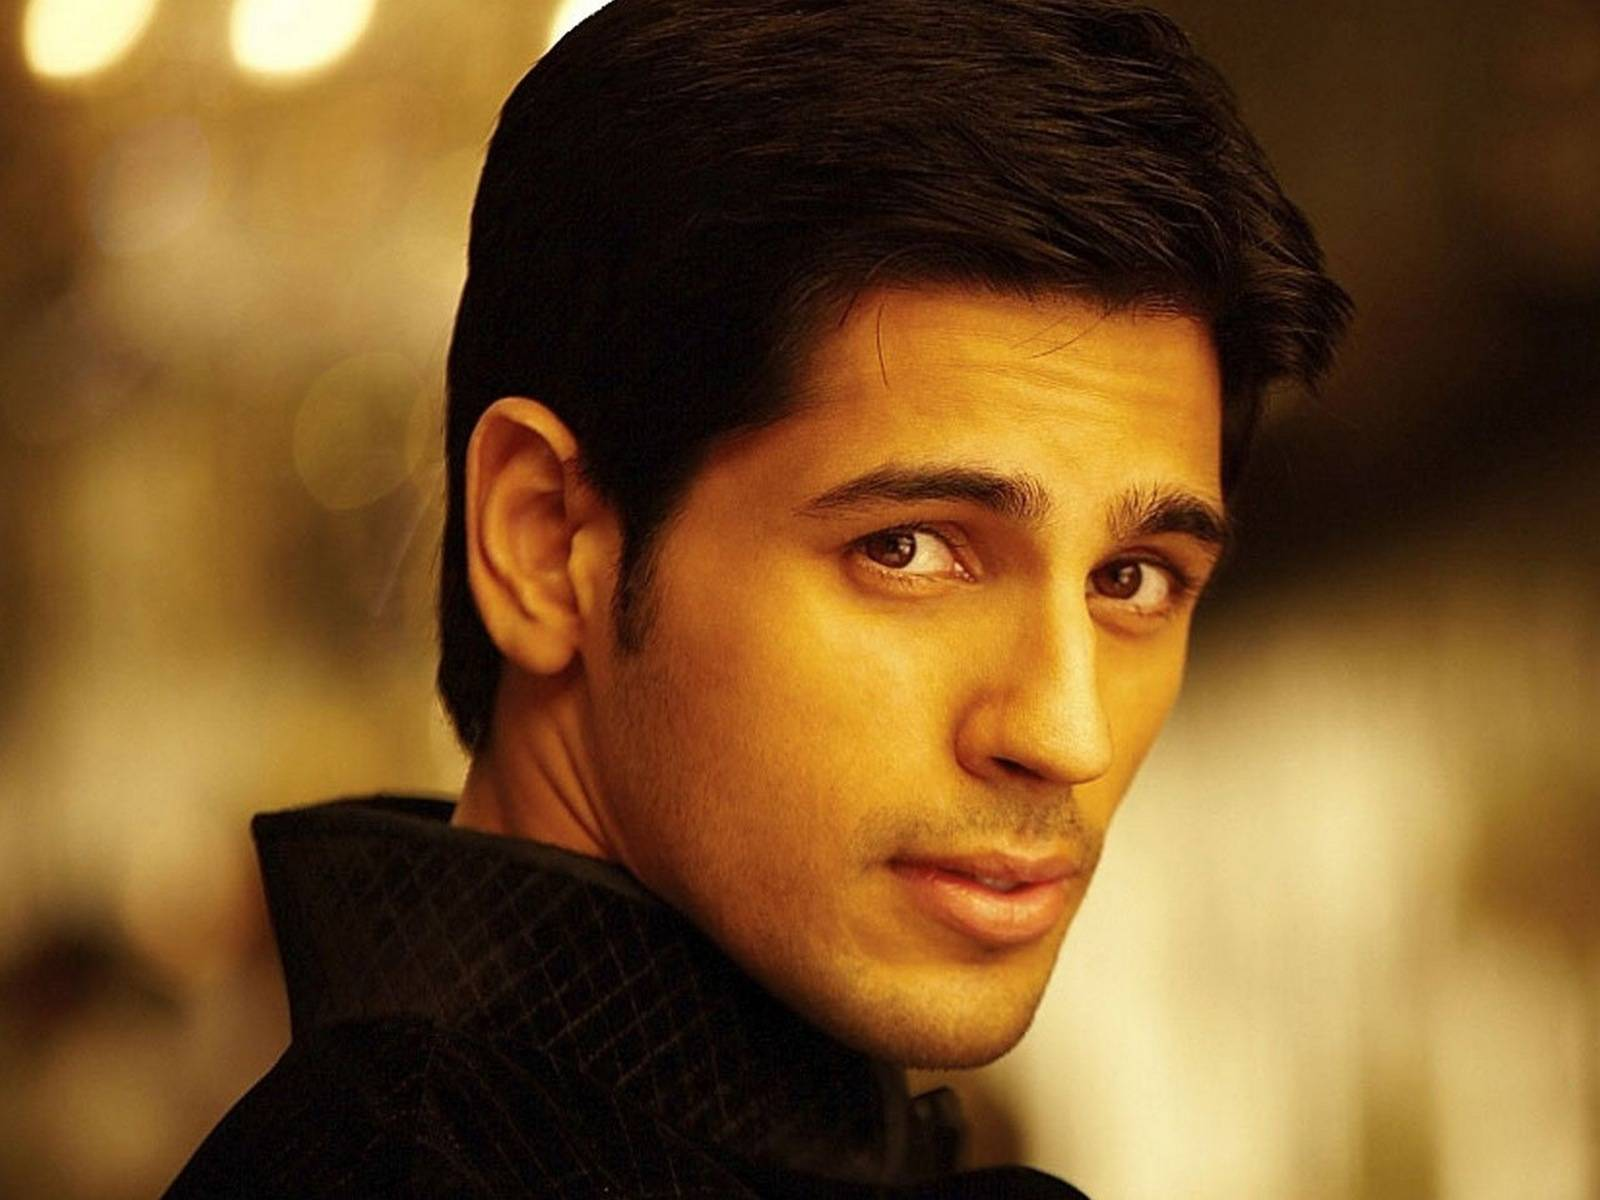 Bollywood Actors Walpaper In 2080p: Sidharth Malhotra Bollywood Actors HD Wallpaper In 1080p